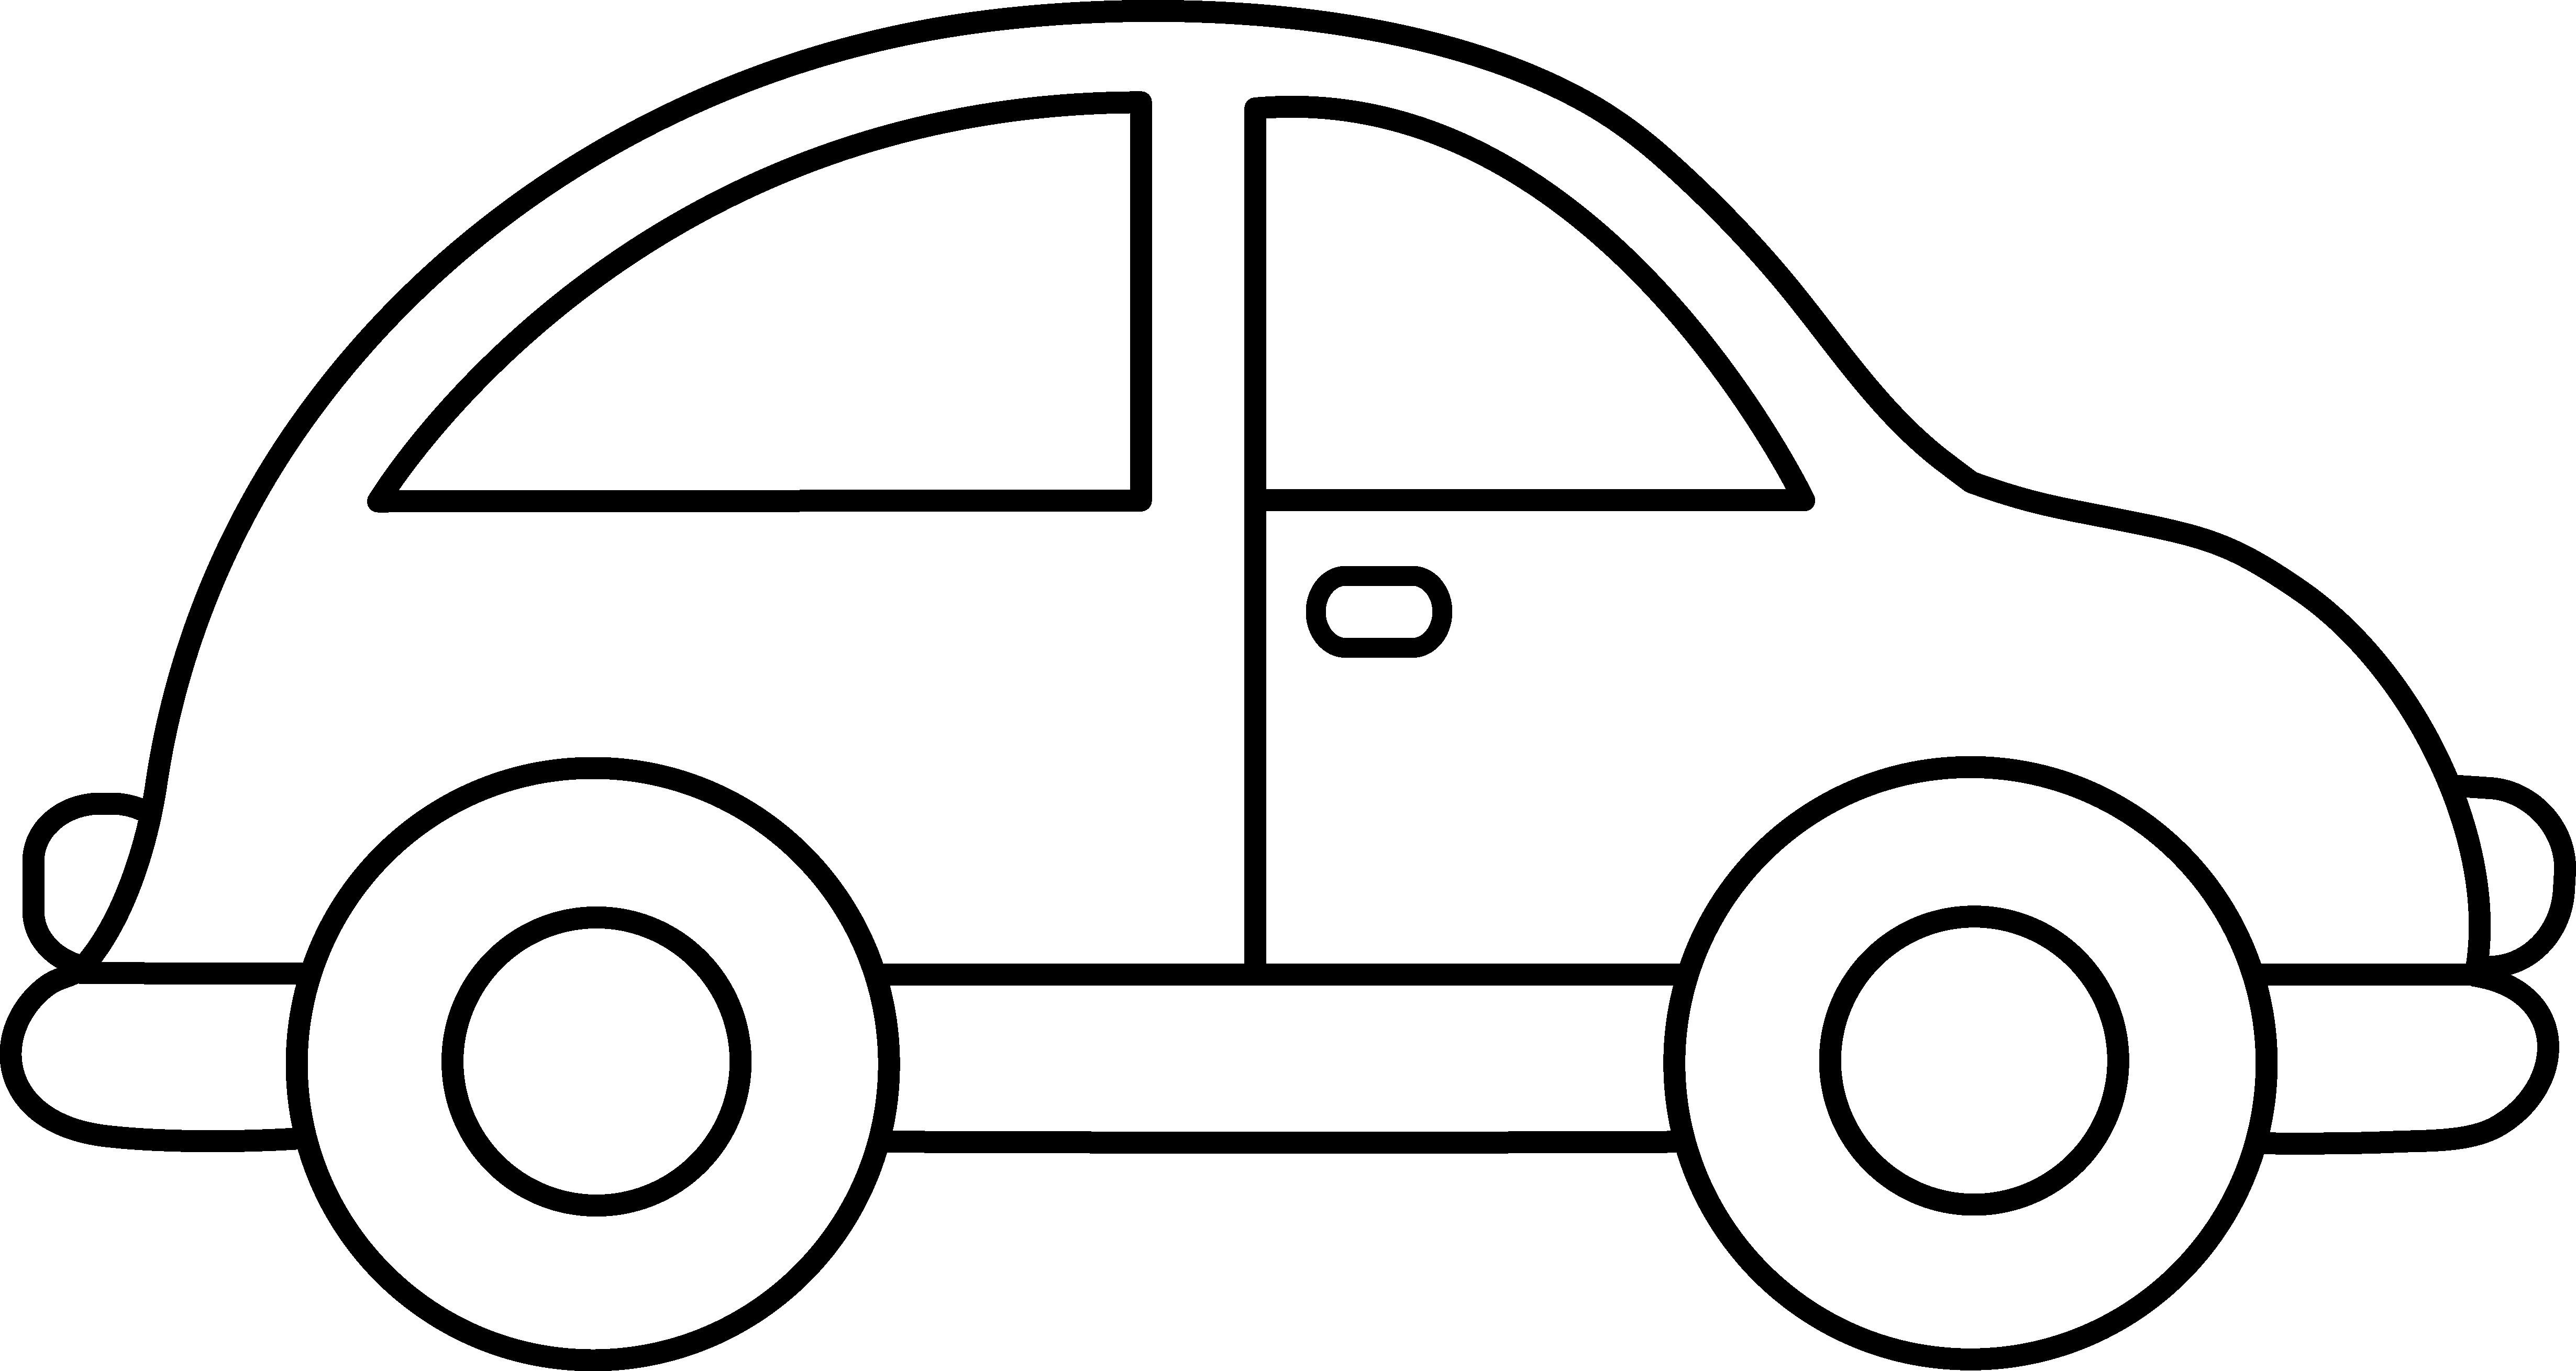 Free clipart images black and white car graphic royalty free stock Car Clipart Black And White Free. Free Teenage Mutant Ninja Turtles ... graphic royalty free stock